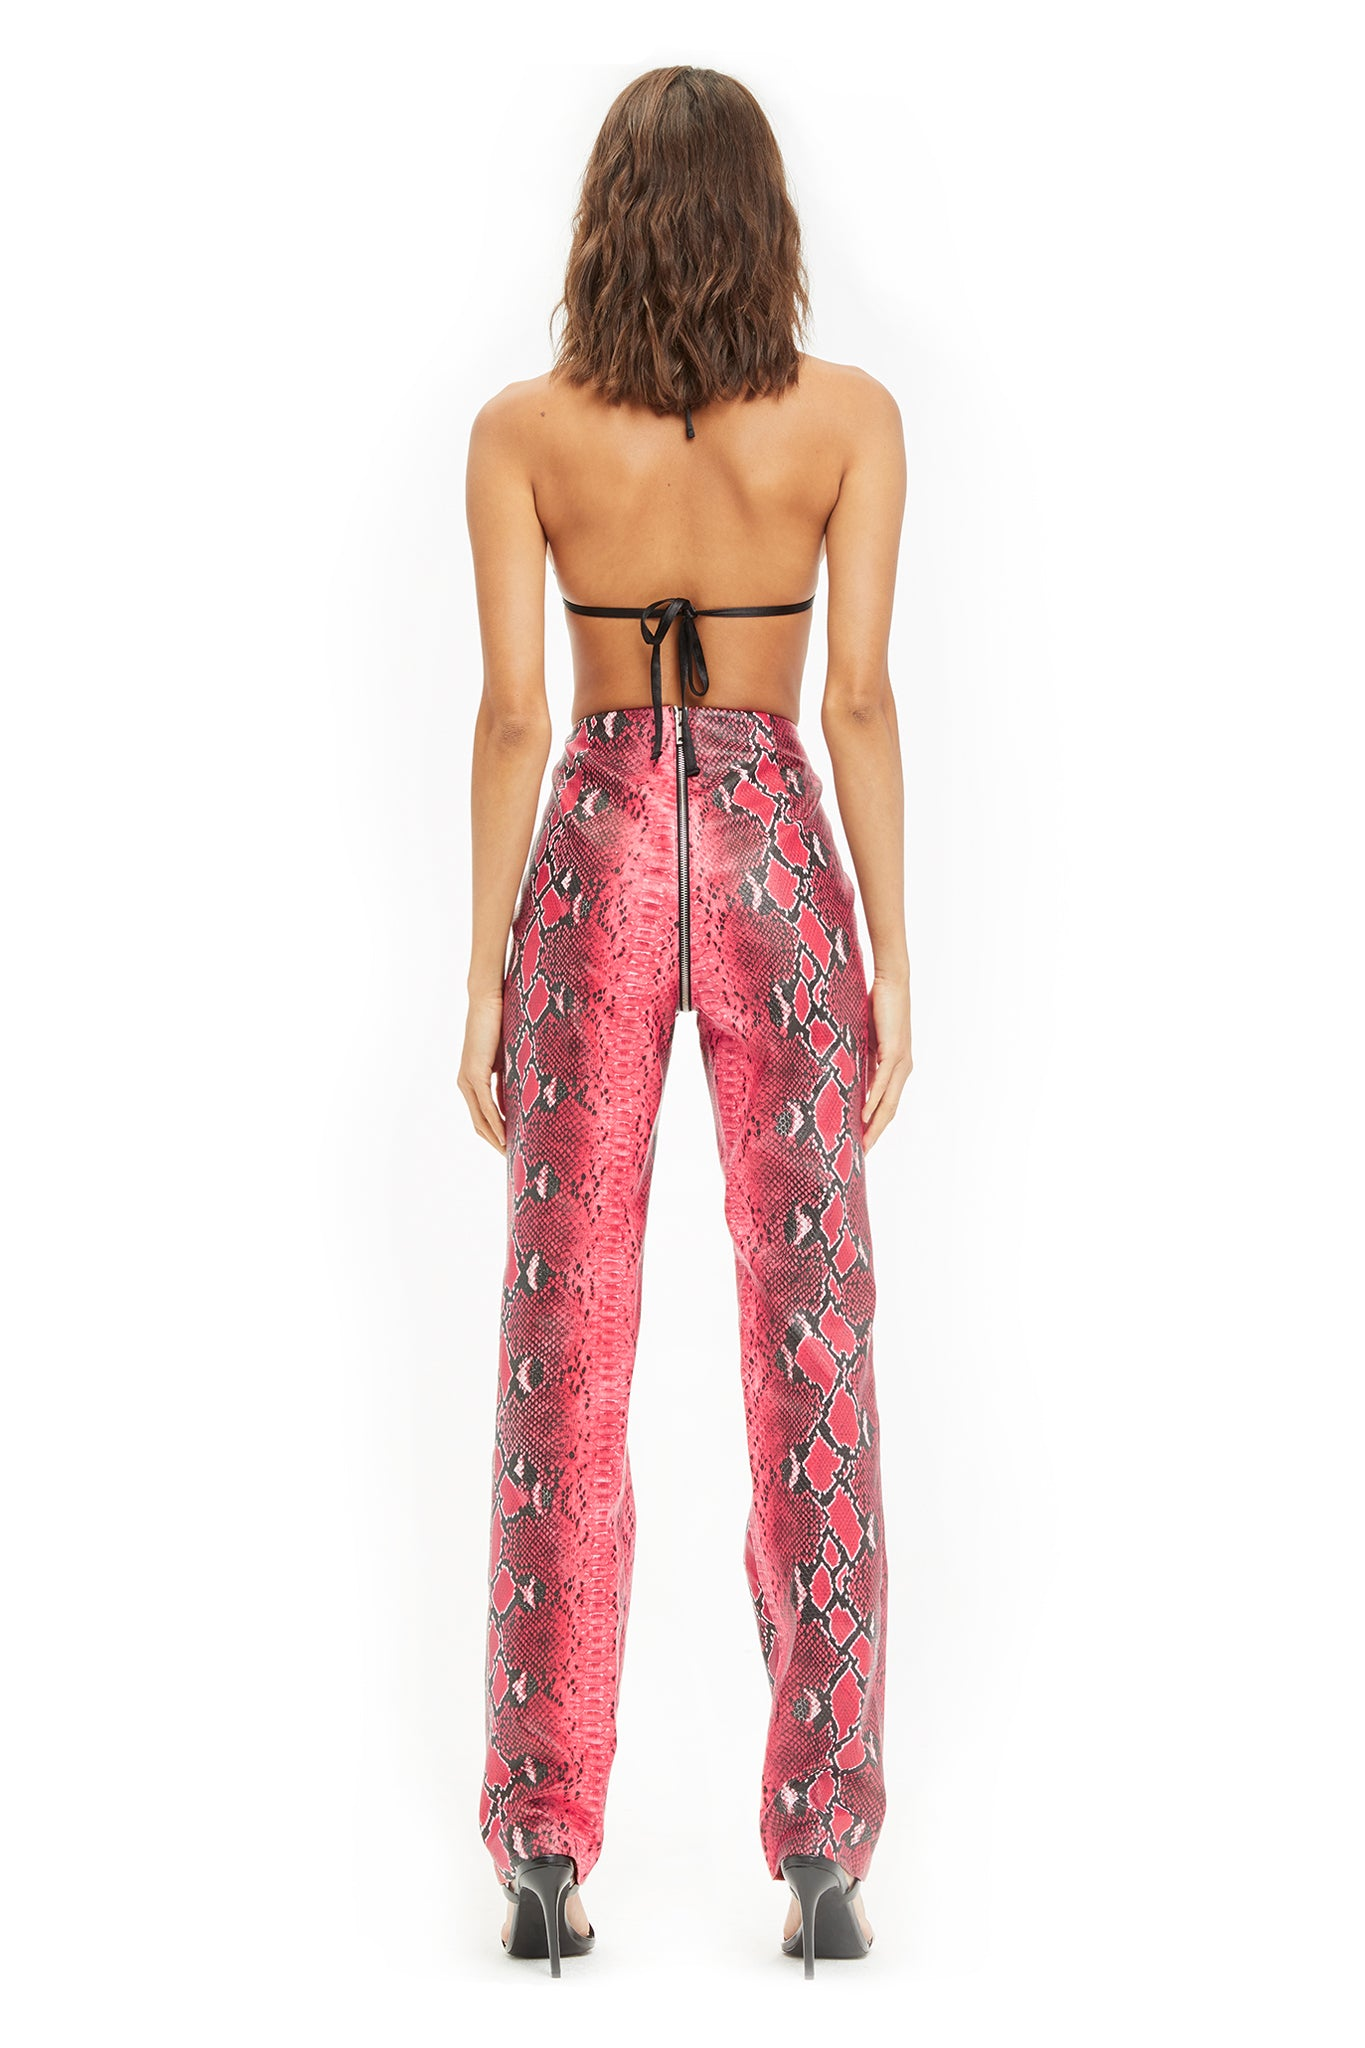 PRE-ORDER ANET PANT - RED SNAKESKIN (SHIPPING LATE SEPTEMBER)